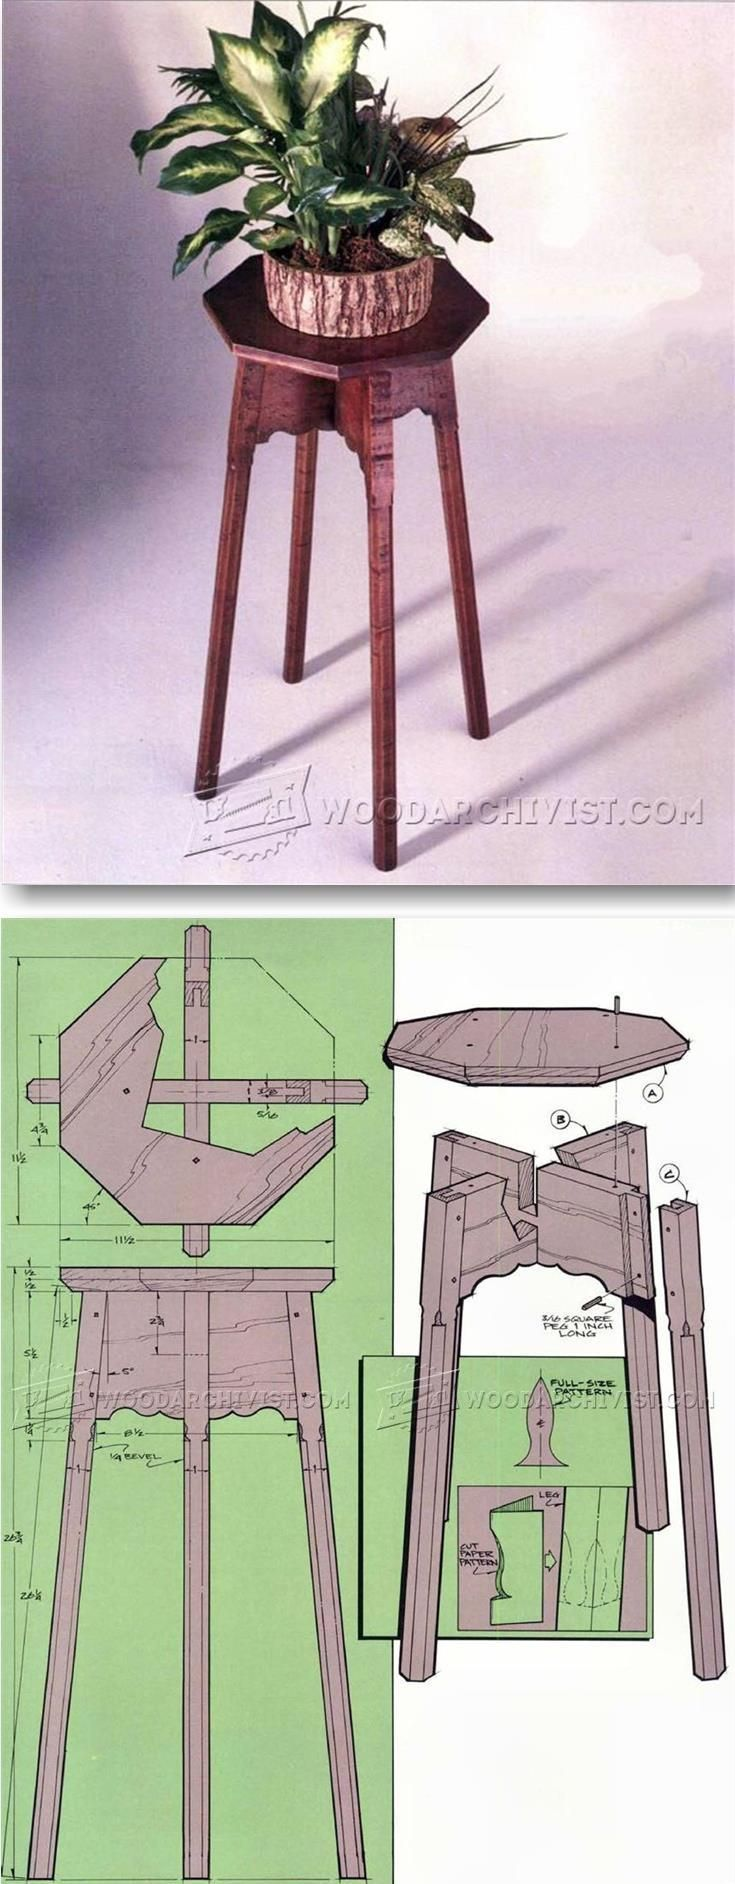 Build Plant Stand - Furniture Plans and Projects | WoodArchivist.com